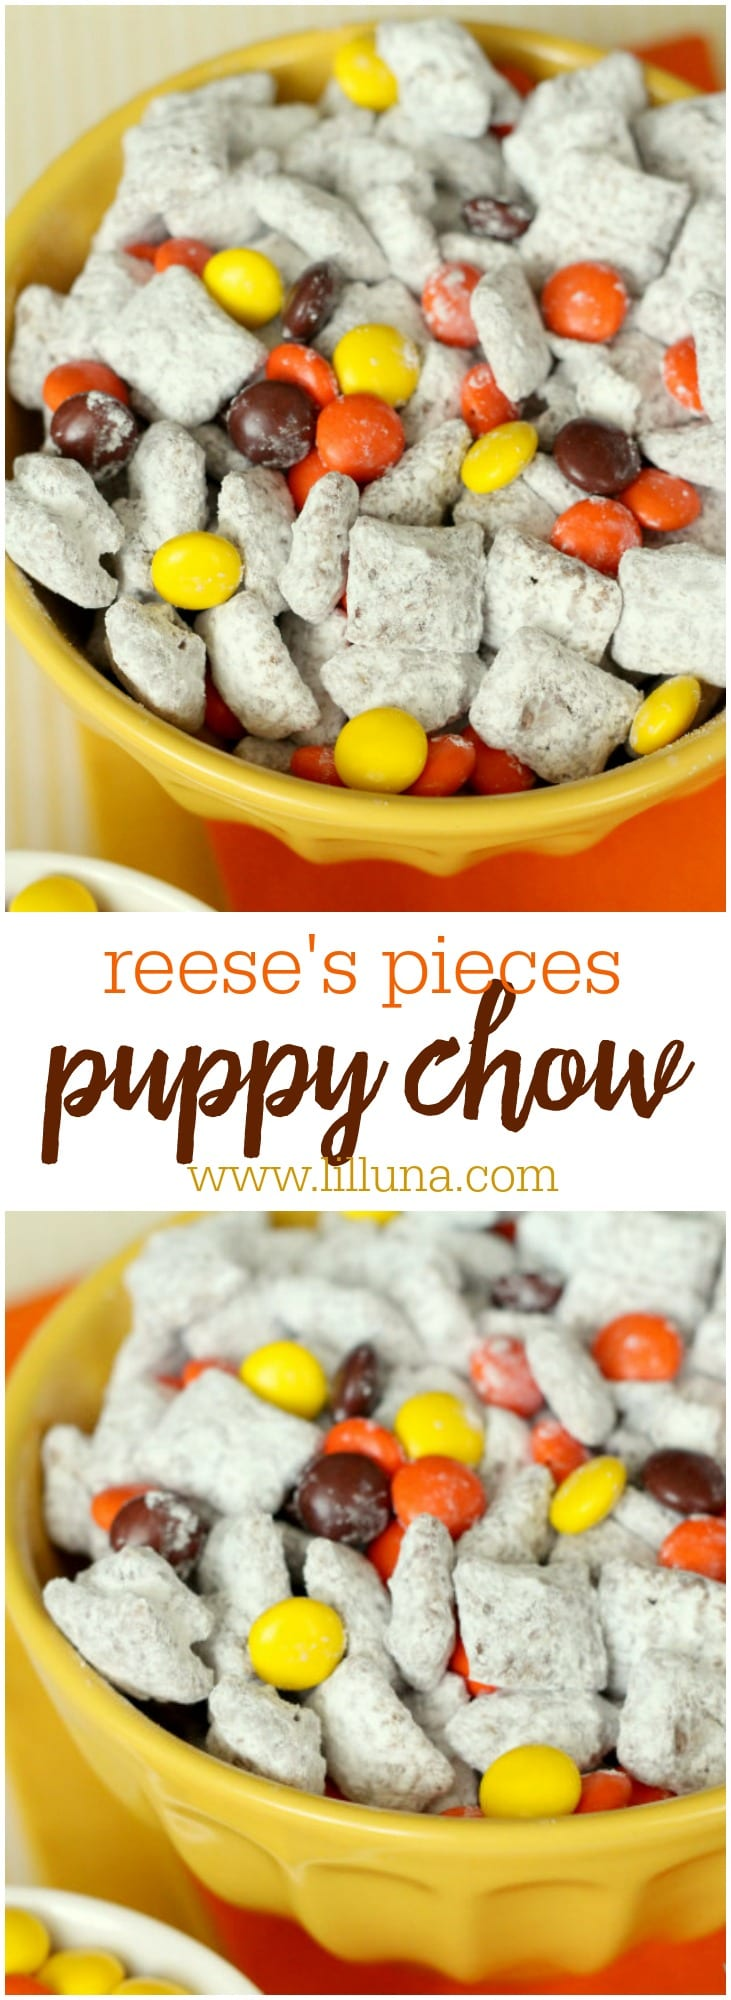 Reeses Pieces Puppy Chow - a delicious snack mix filled with peanut butter, chocolate, cereal and powdered sugar sprinkled with Reese's Pieces!